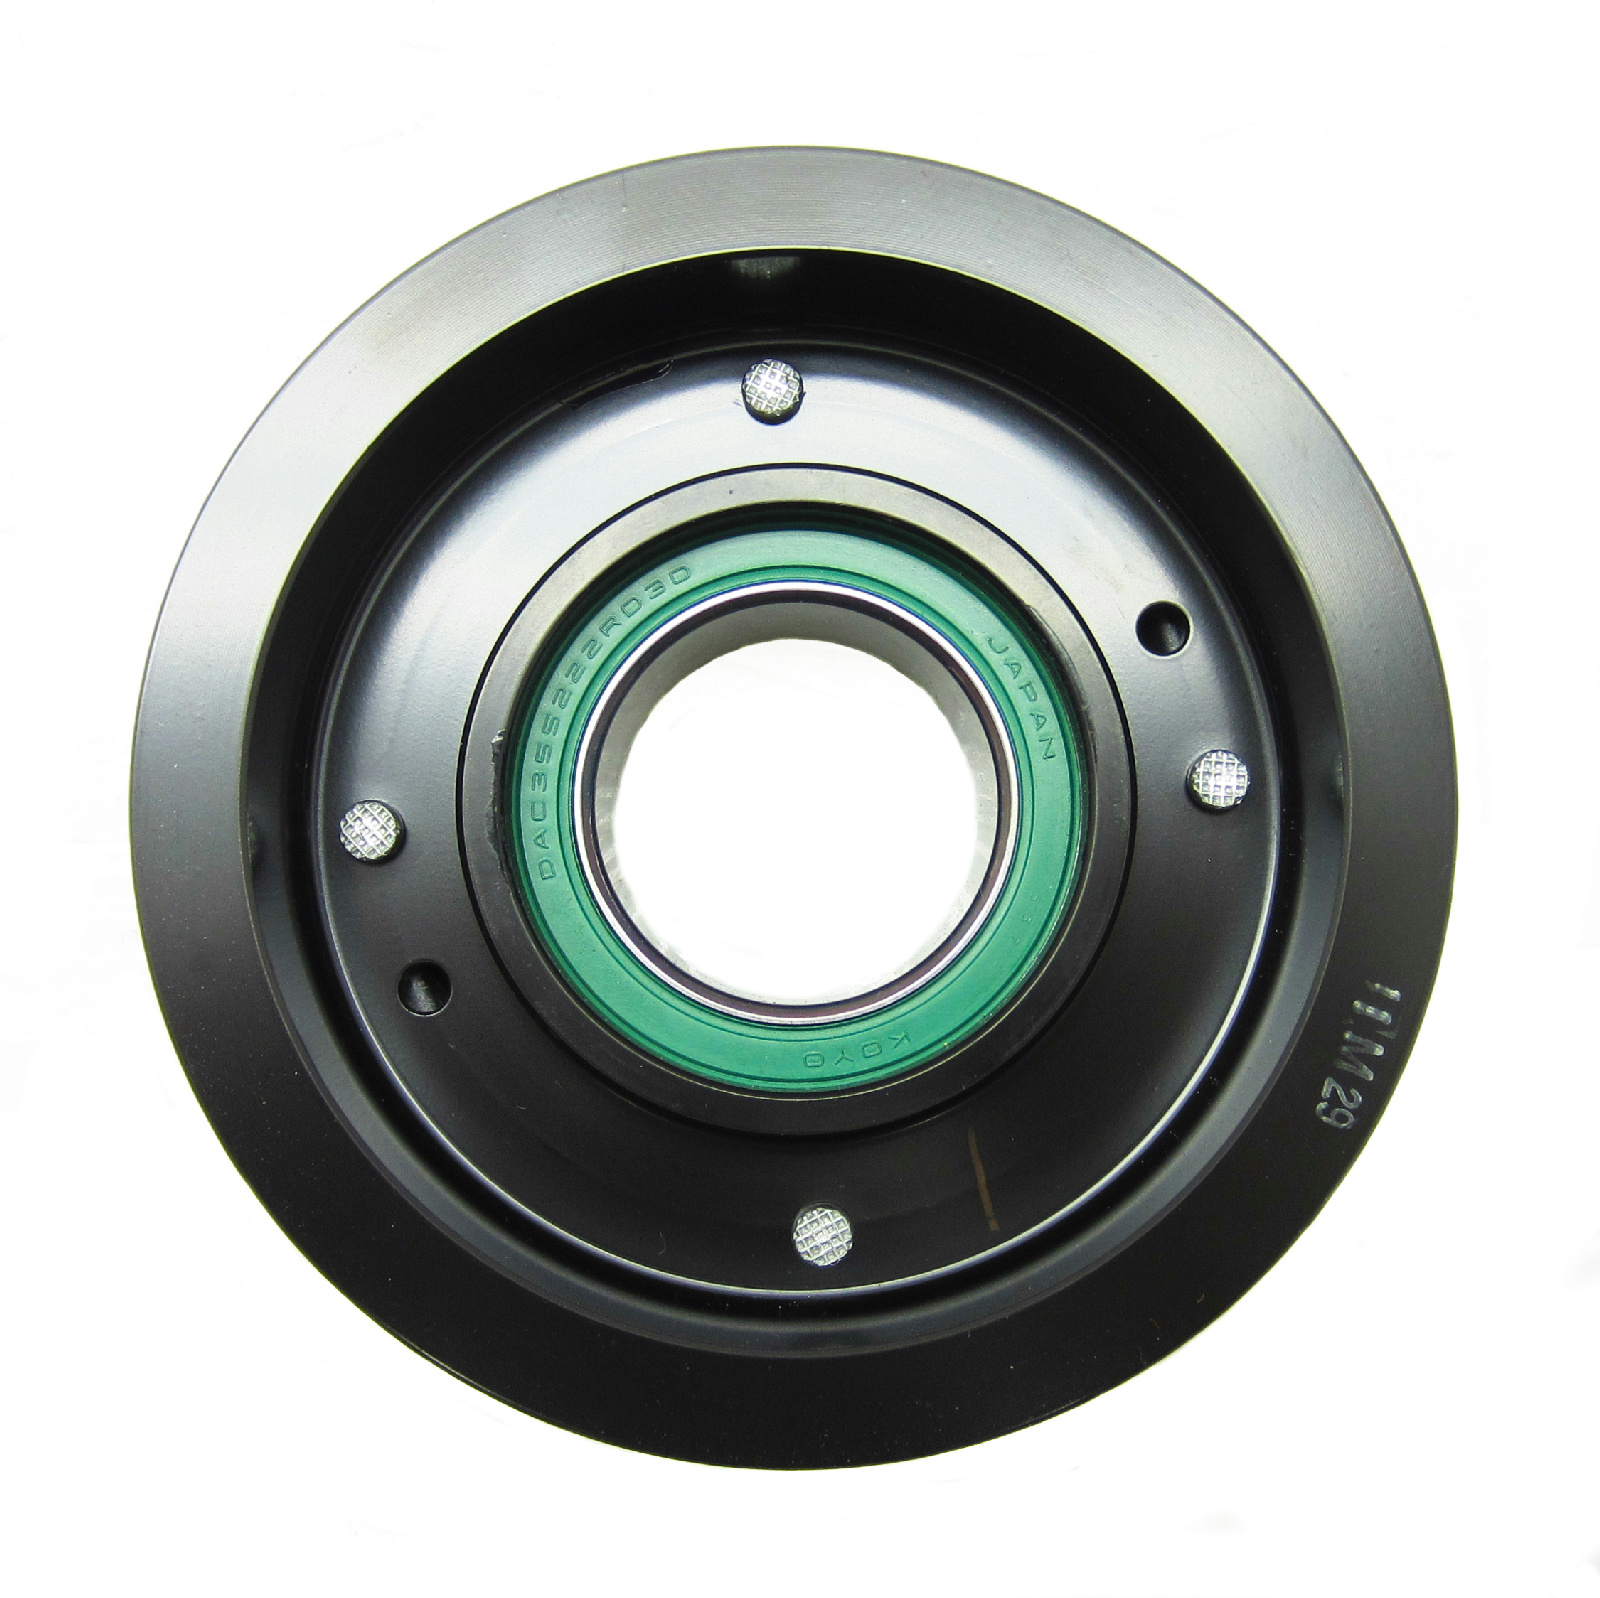 Mercedes Benz C240 Price: Pulley For 2001-2006 Mercedes C240,CL500,E320,E350,S430